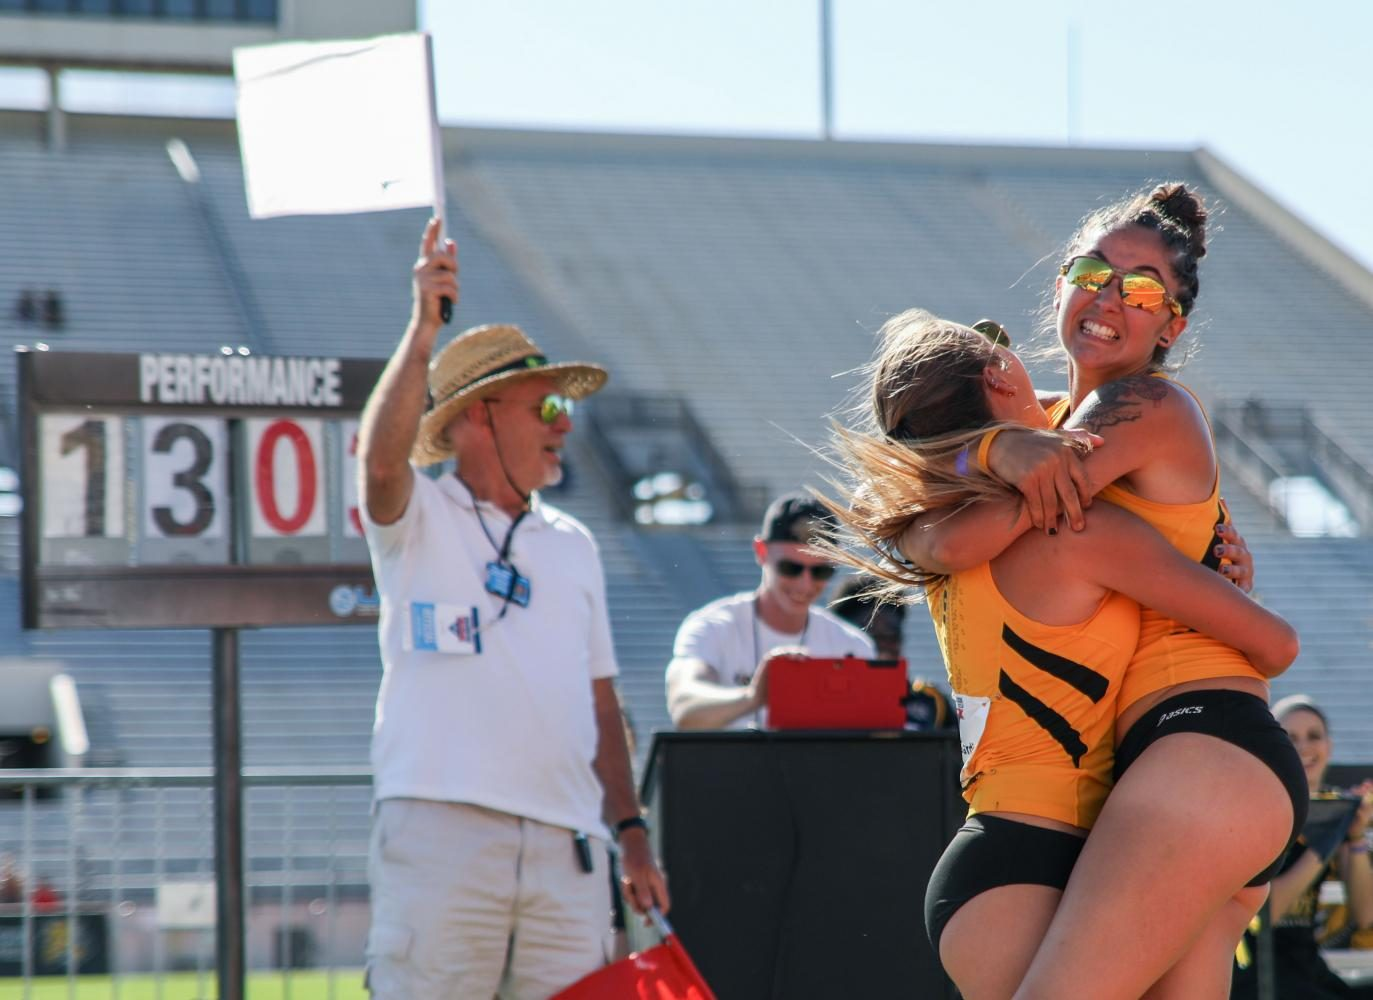 Alesa Frey hugs teammate Emily Gardiner after pole vaulting a personal record of 13 feet 3.75 inches Friday at the Missouri Valley Conference Outdoor Track and Field Championship. Frey won the event. (May 12, 2017)